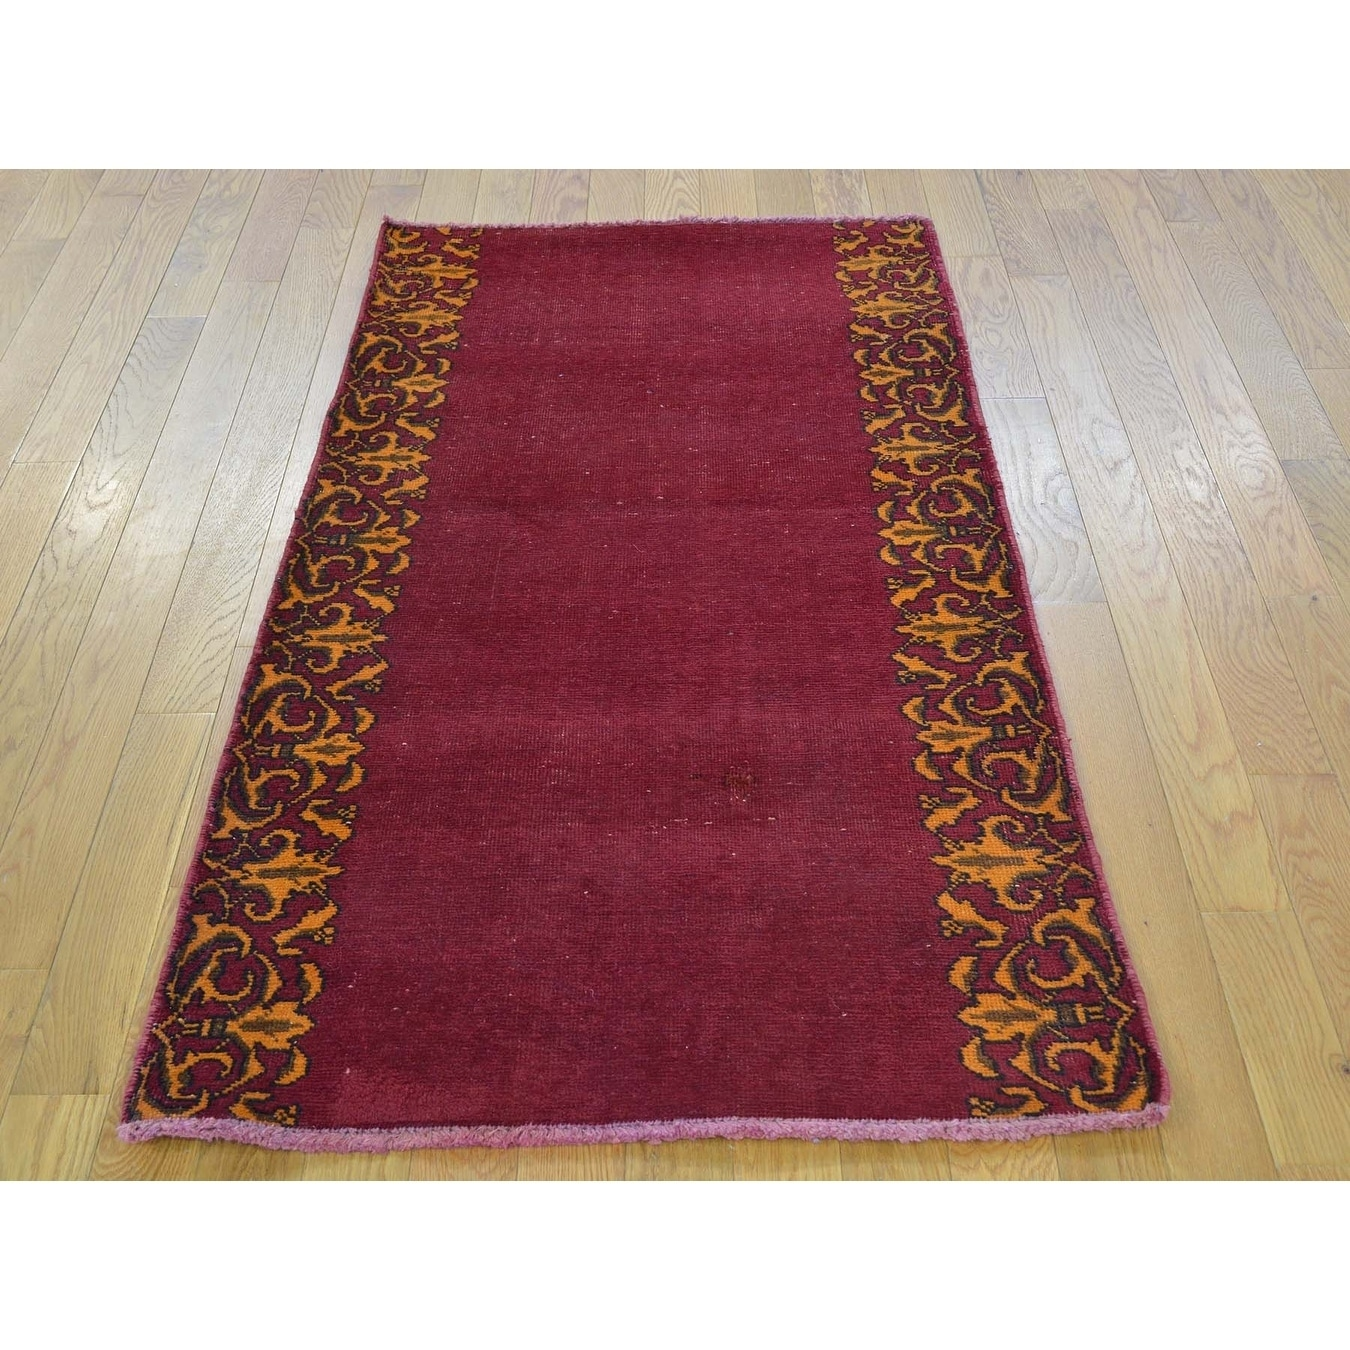 Hand Knotted Red Overdyed & Vintage with Wool Oriental Rug - 27 x 51